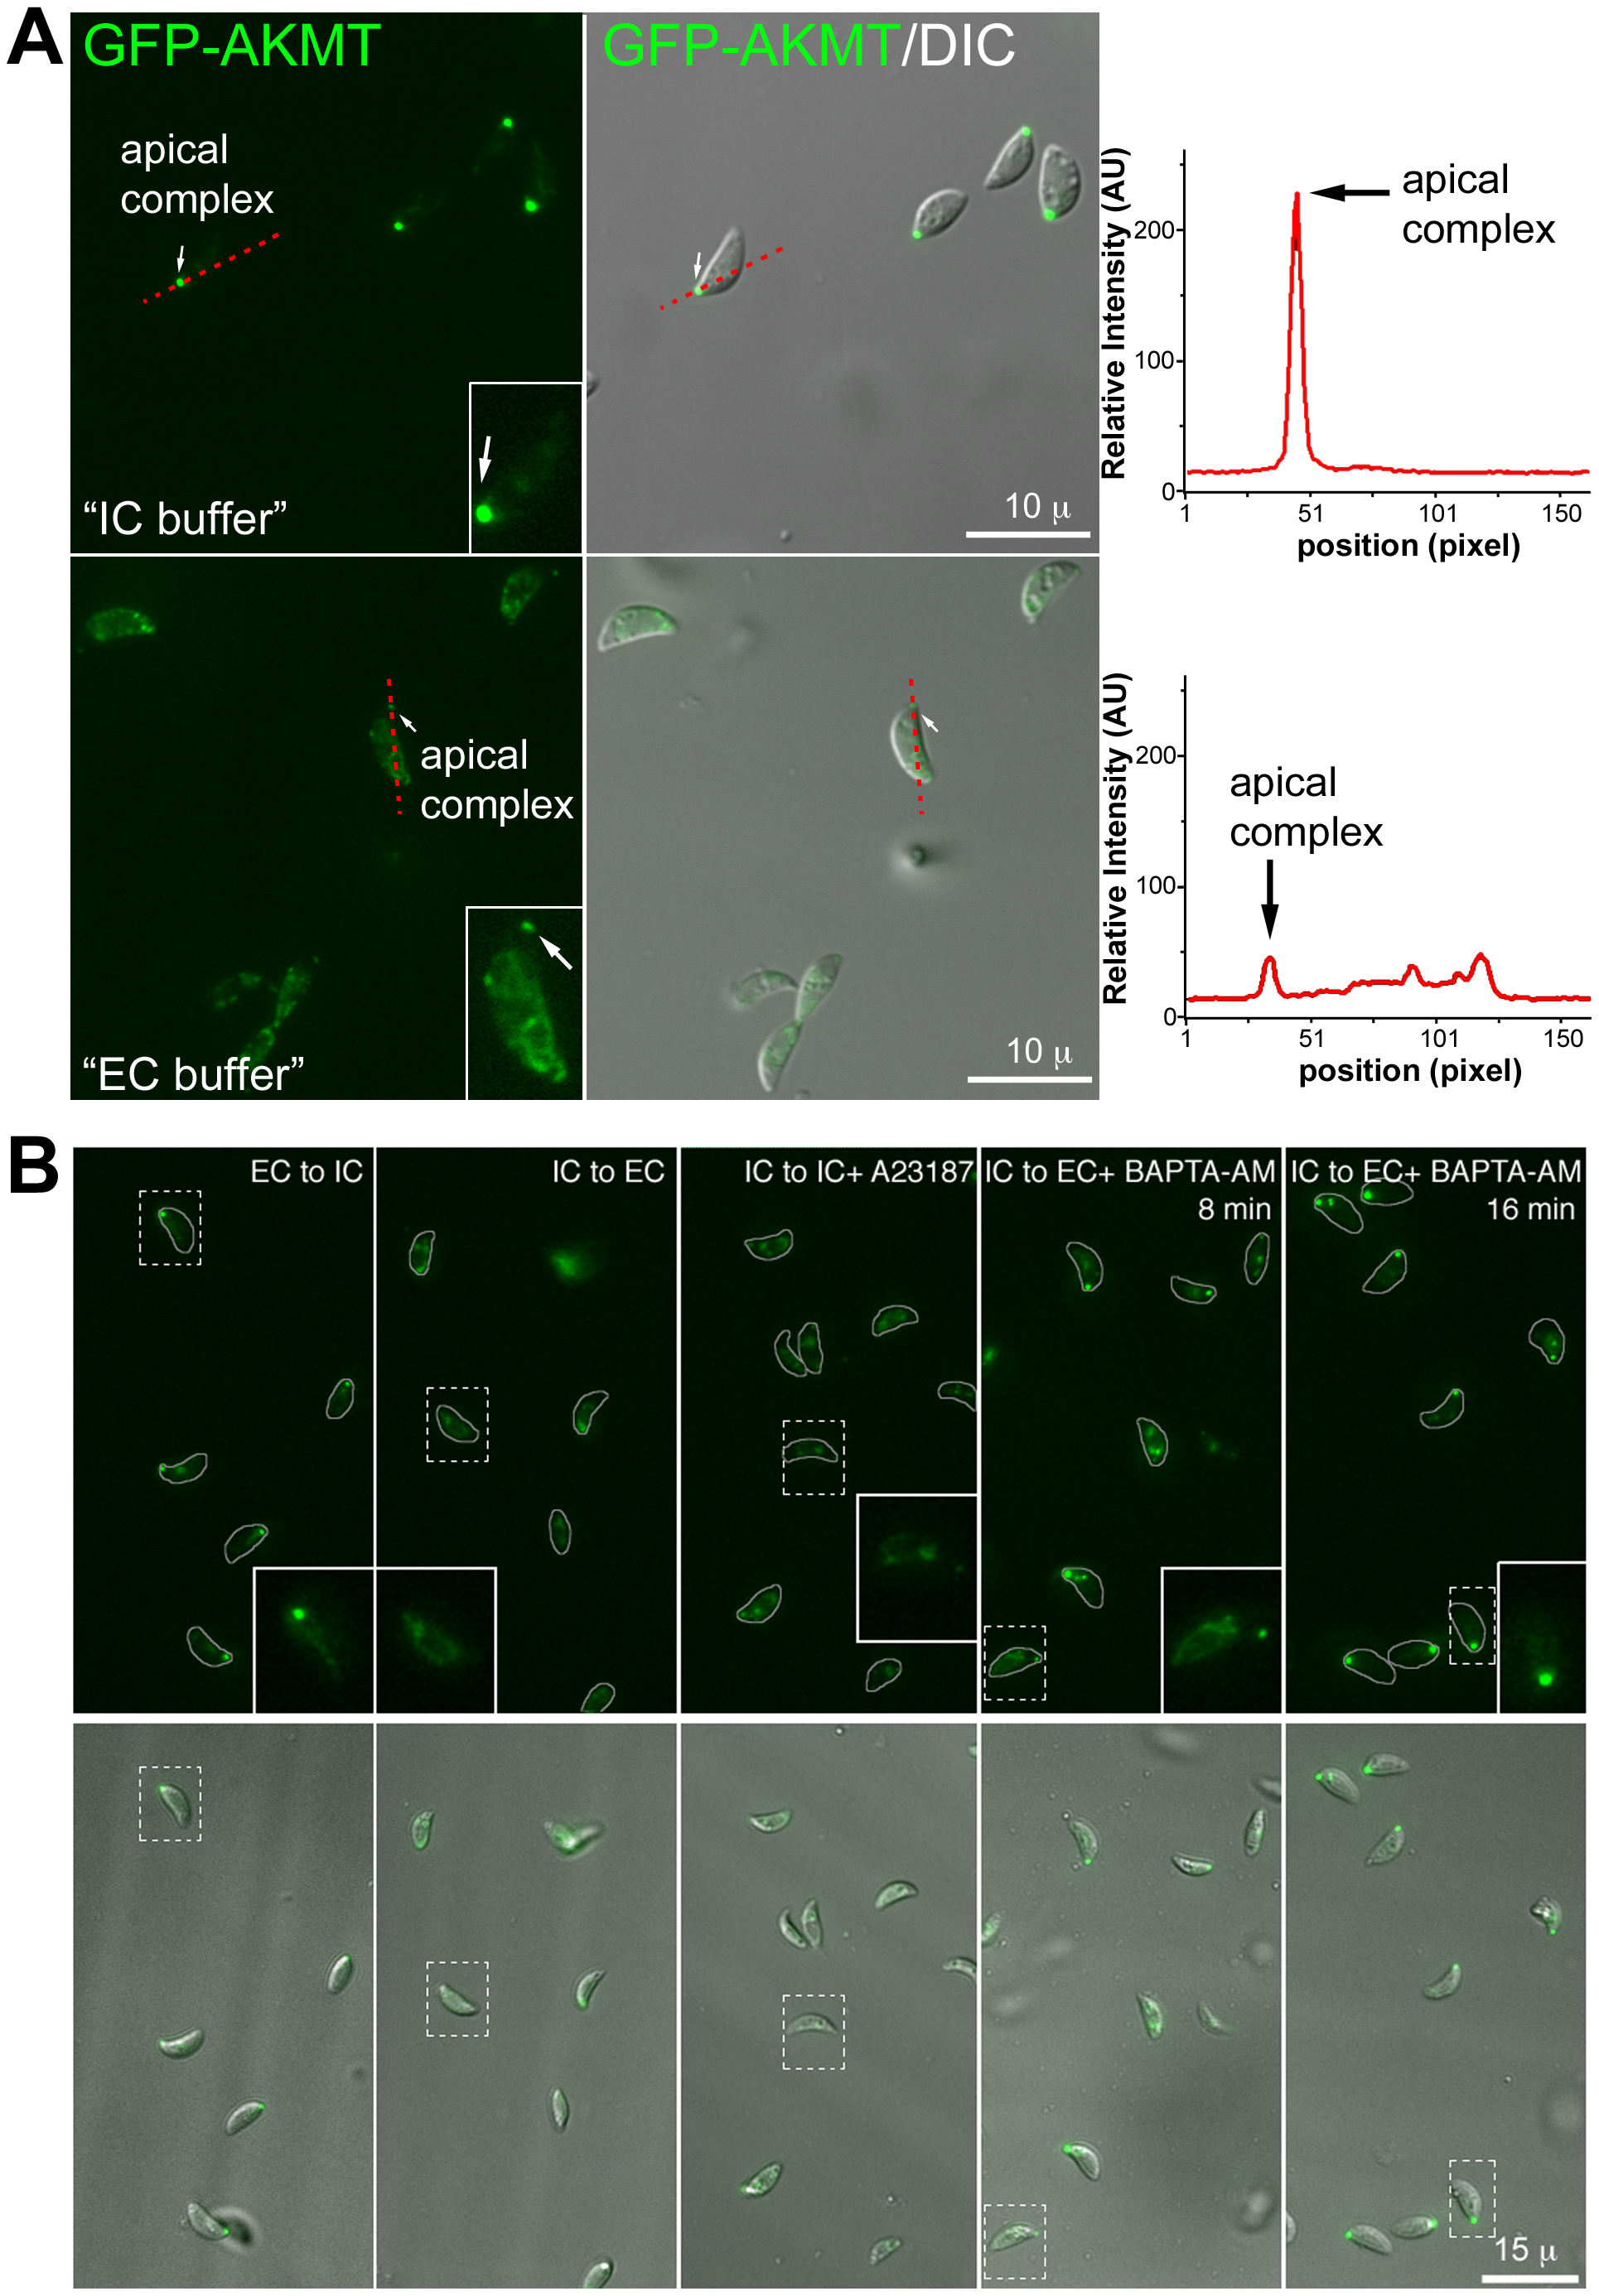 The localization of AKMT is affected by the extracellular and intracellular ionic composition.